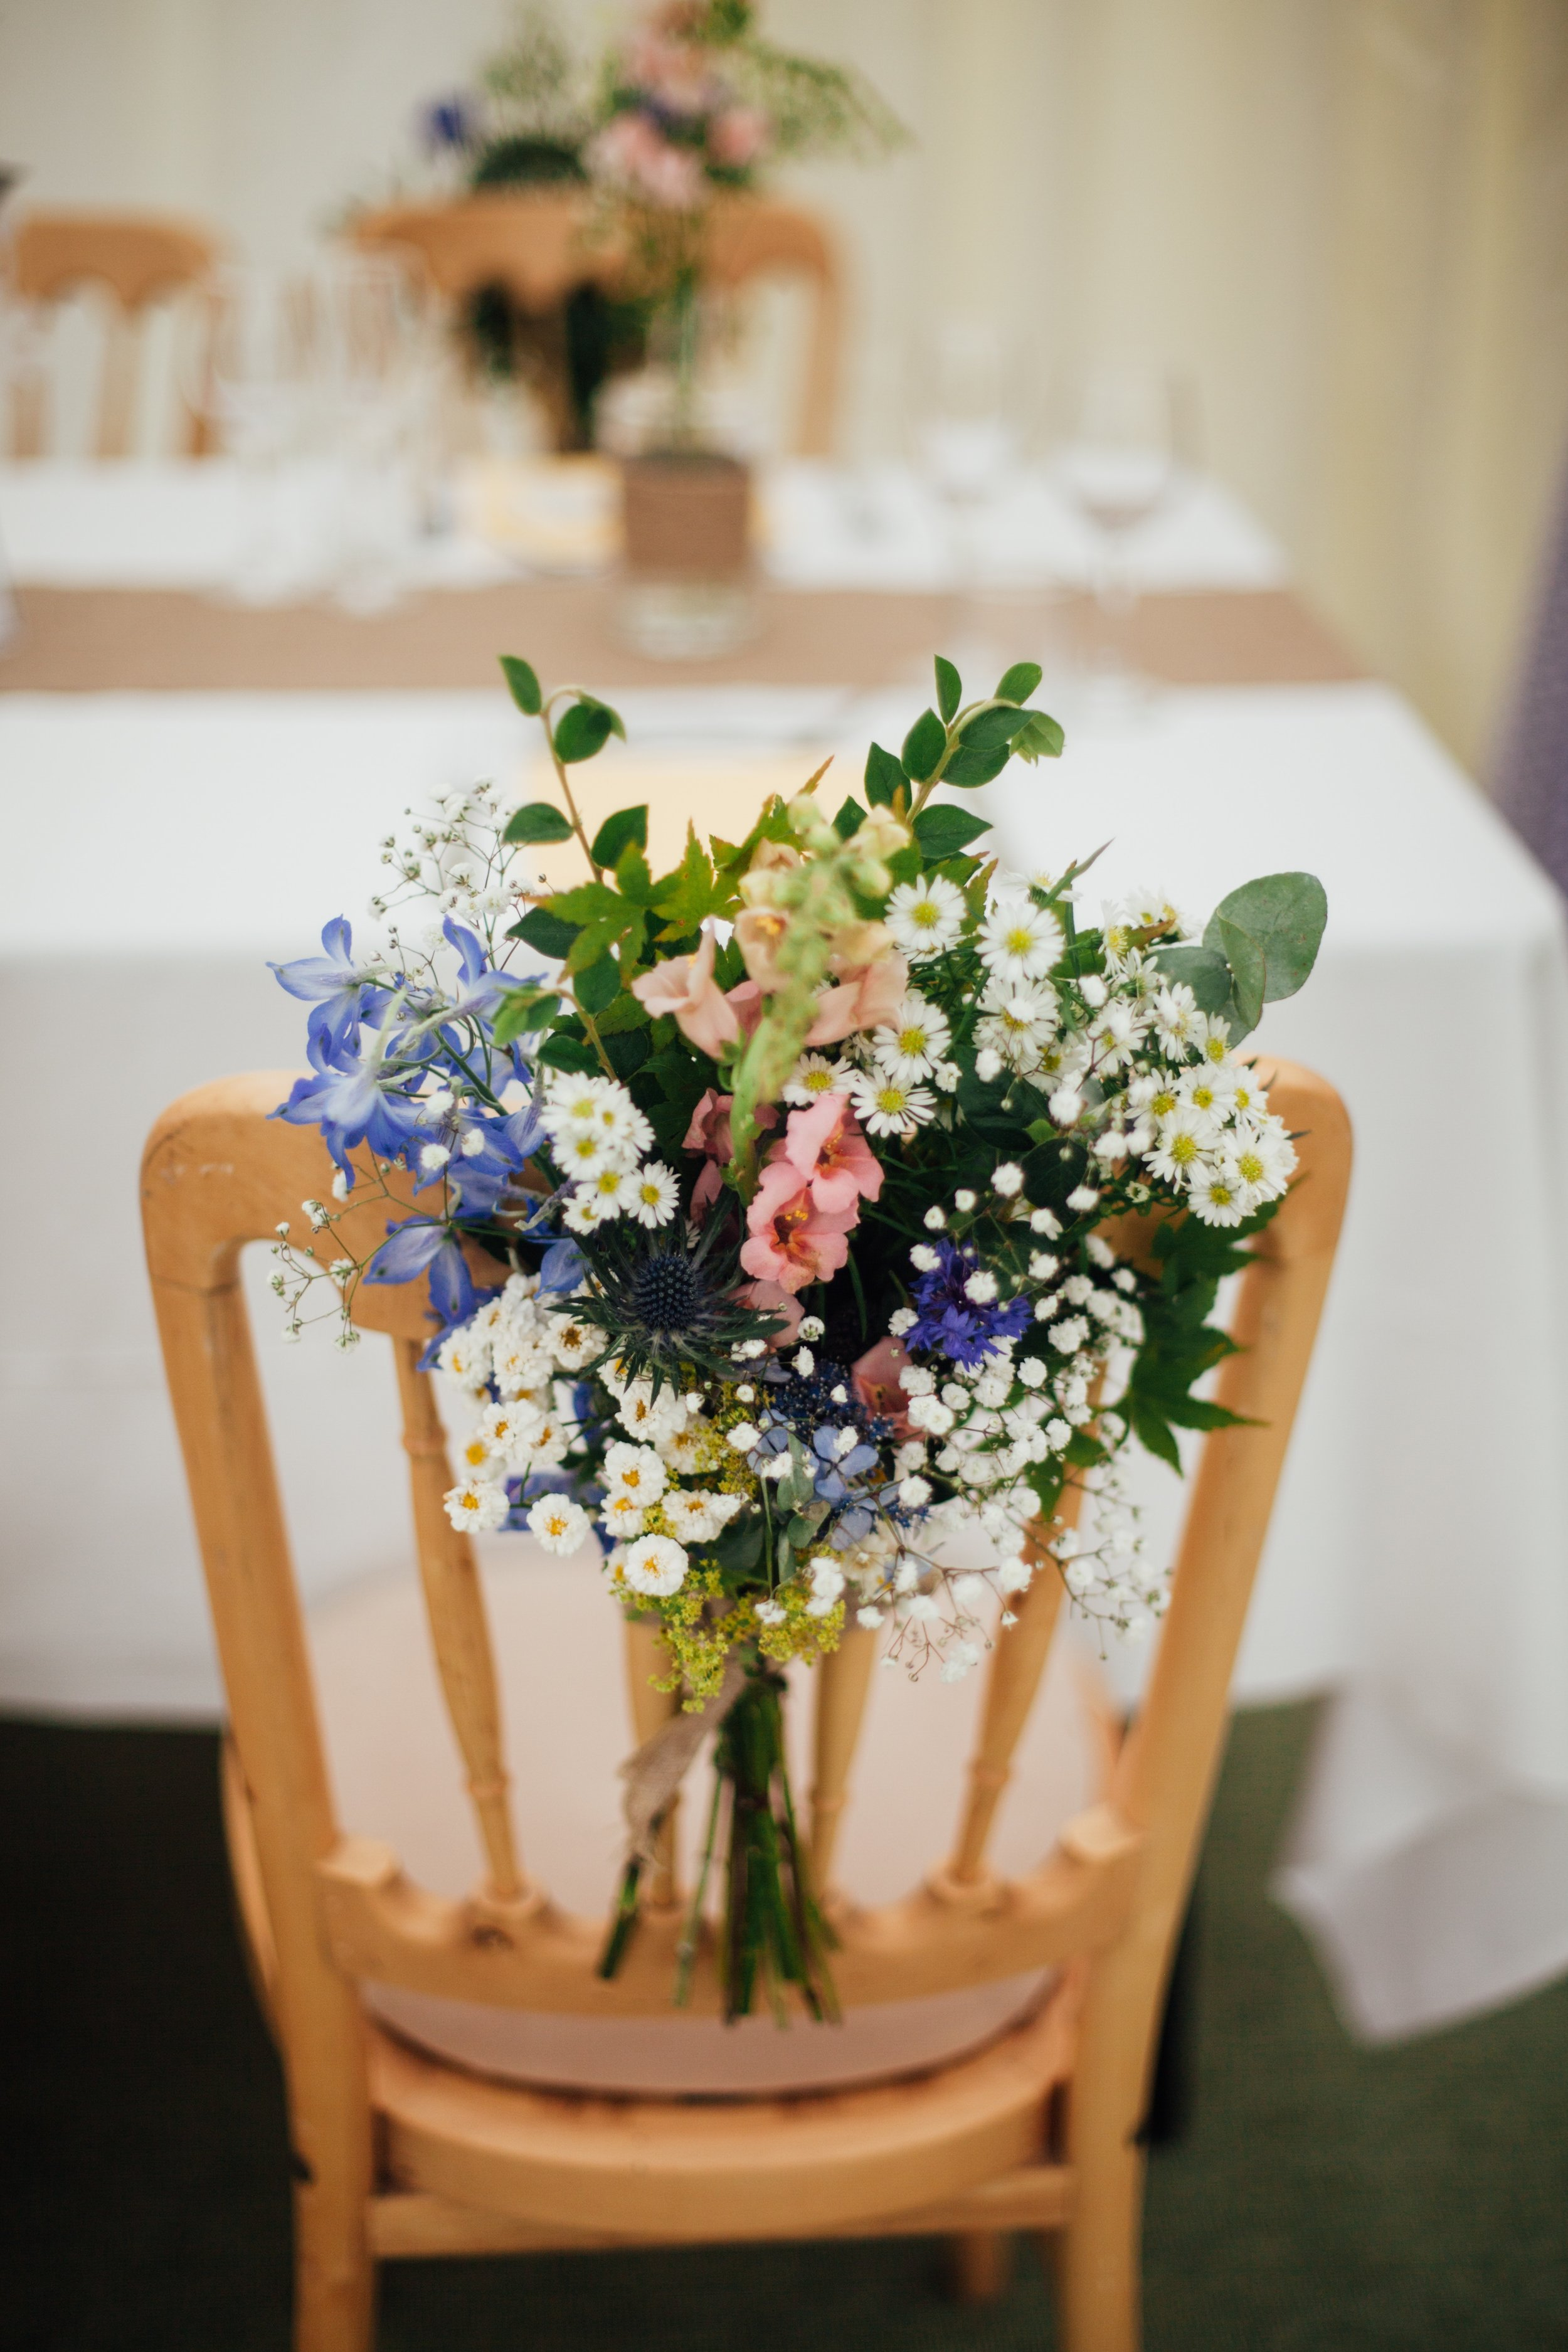 Planning a 2019 Wedding? - Want relaxed catering that tastes great & doesn't blow your budget out of the water?Read on….